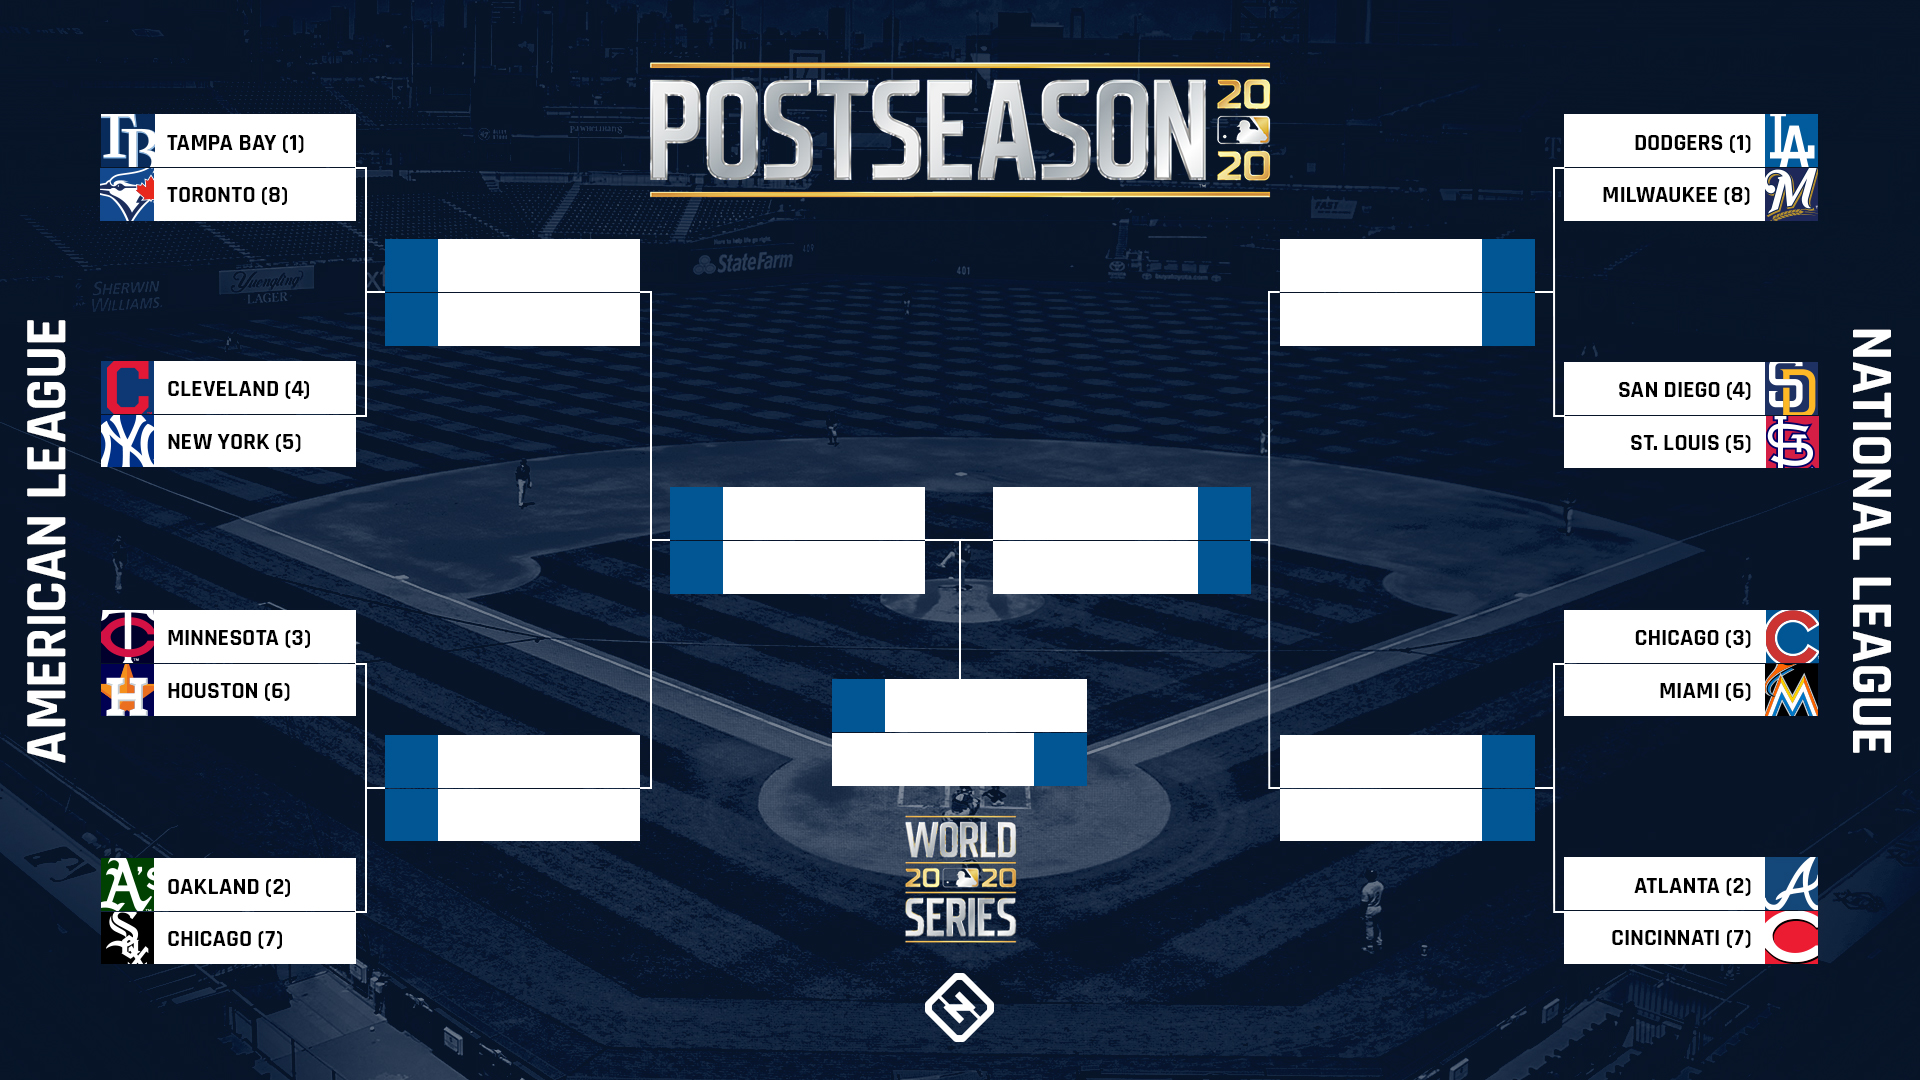 Mlb Playoff Schedule 2020 Full Bracket Dates Times Tv Channels For Every Series Monkey Viral